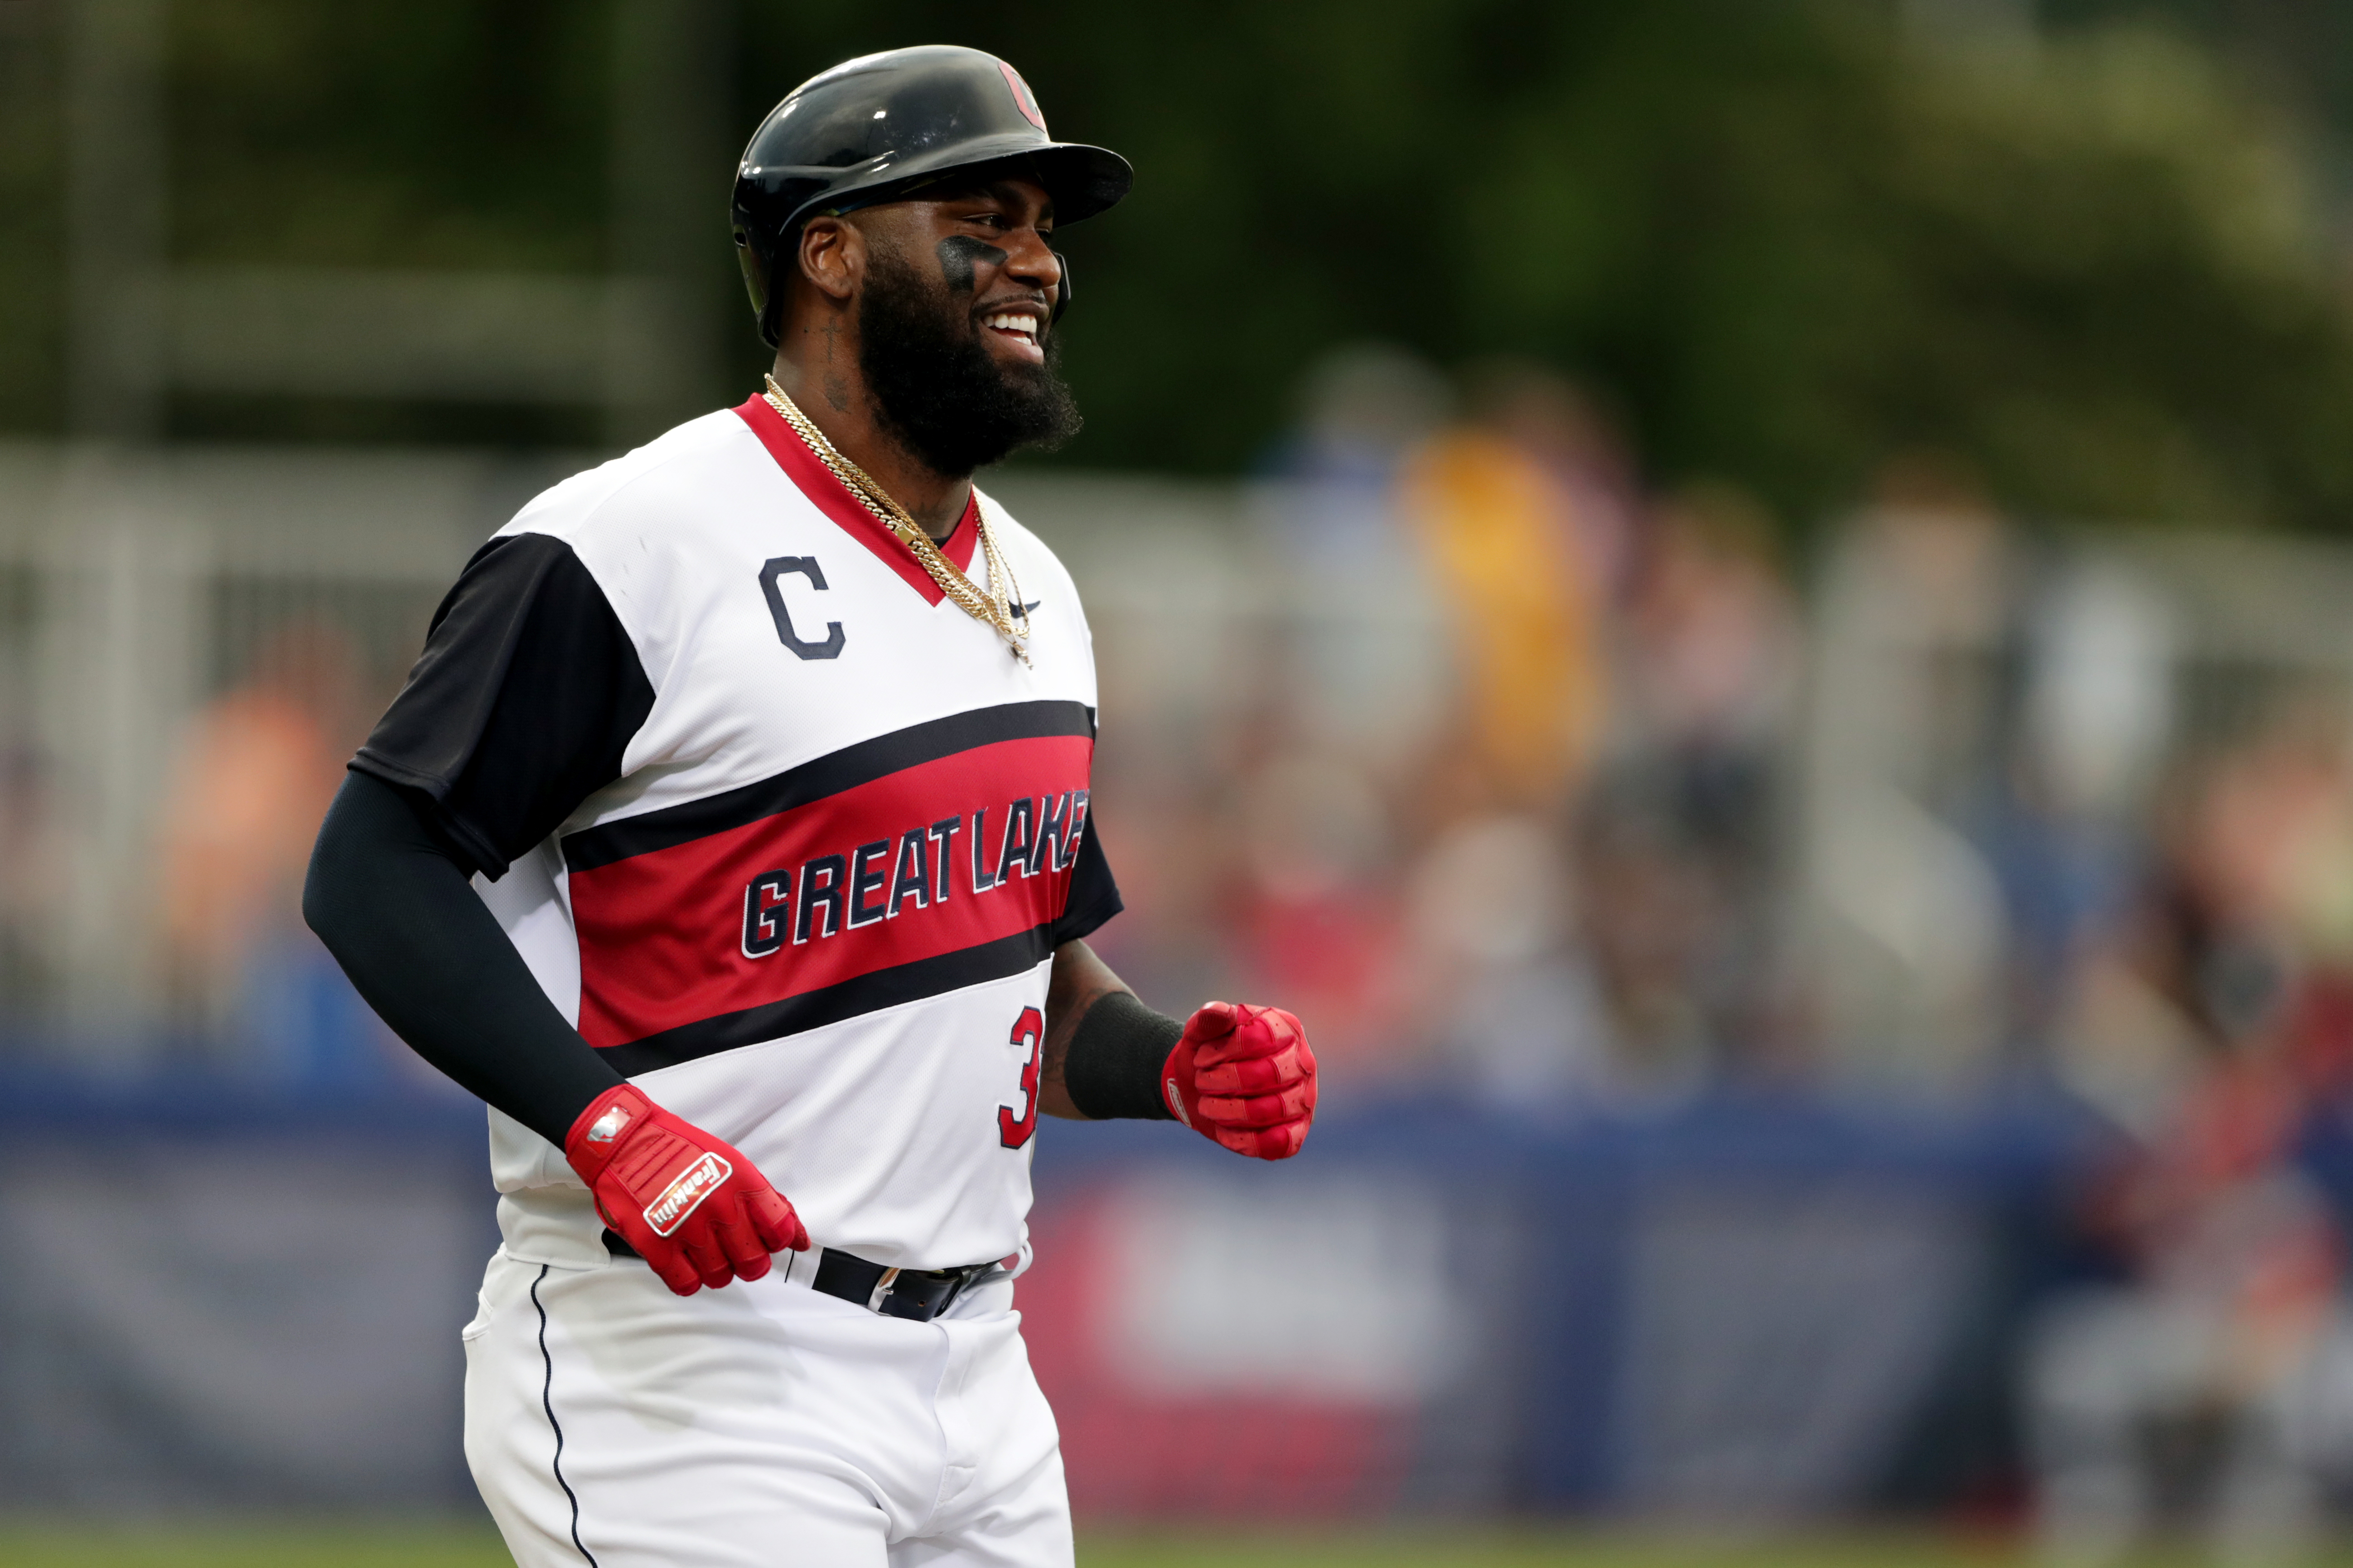 Franmil Reyes #32 of the Cleveland Indians looks on during the game between the Los Angeles Angels and the Cleveland Indians at Historic Bowman Field on Sunday, August 22, 2021 in Williamsport, Pennsylvania.